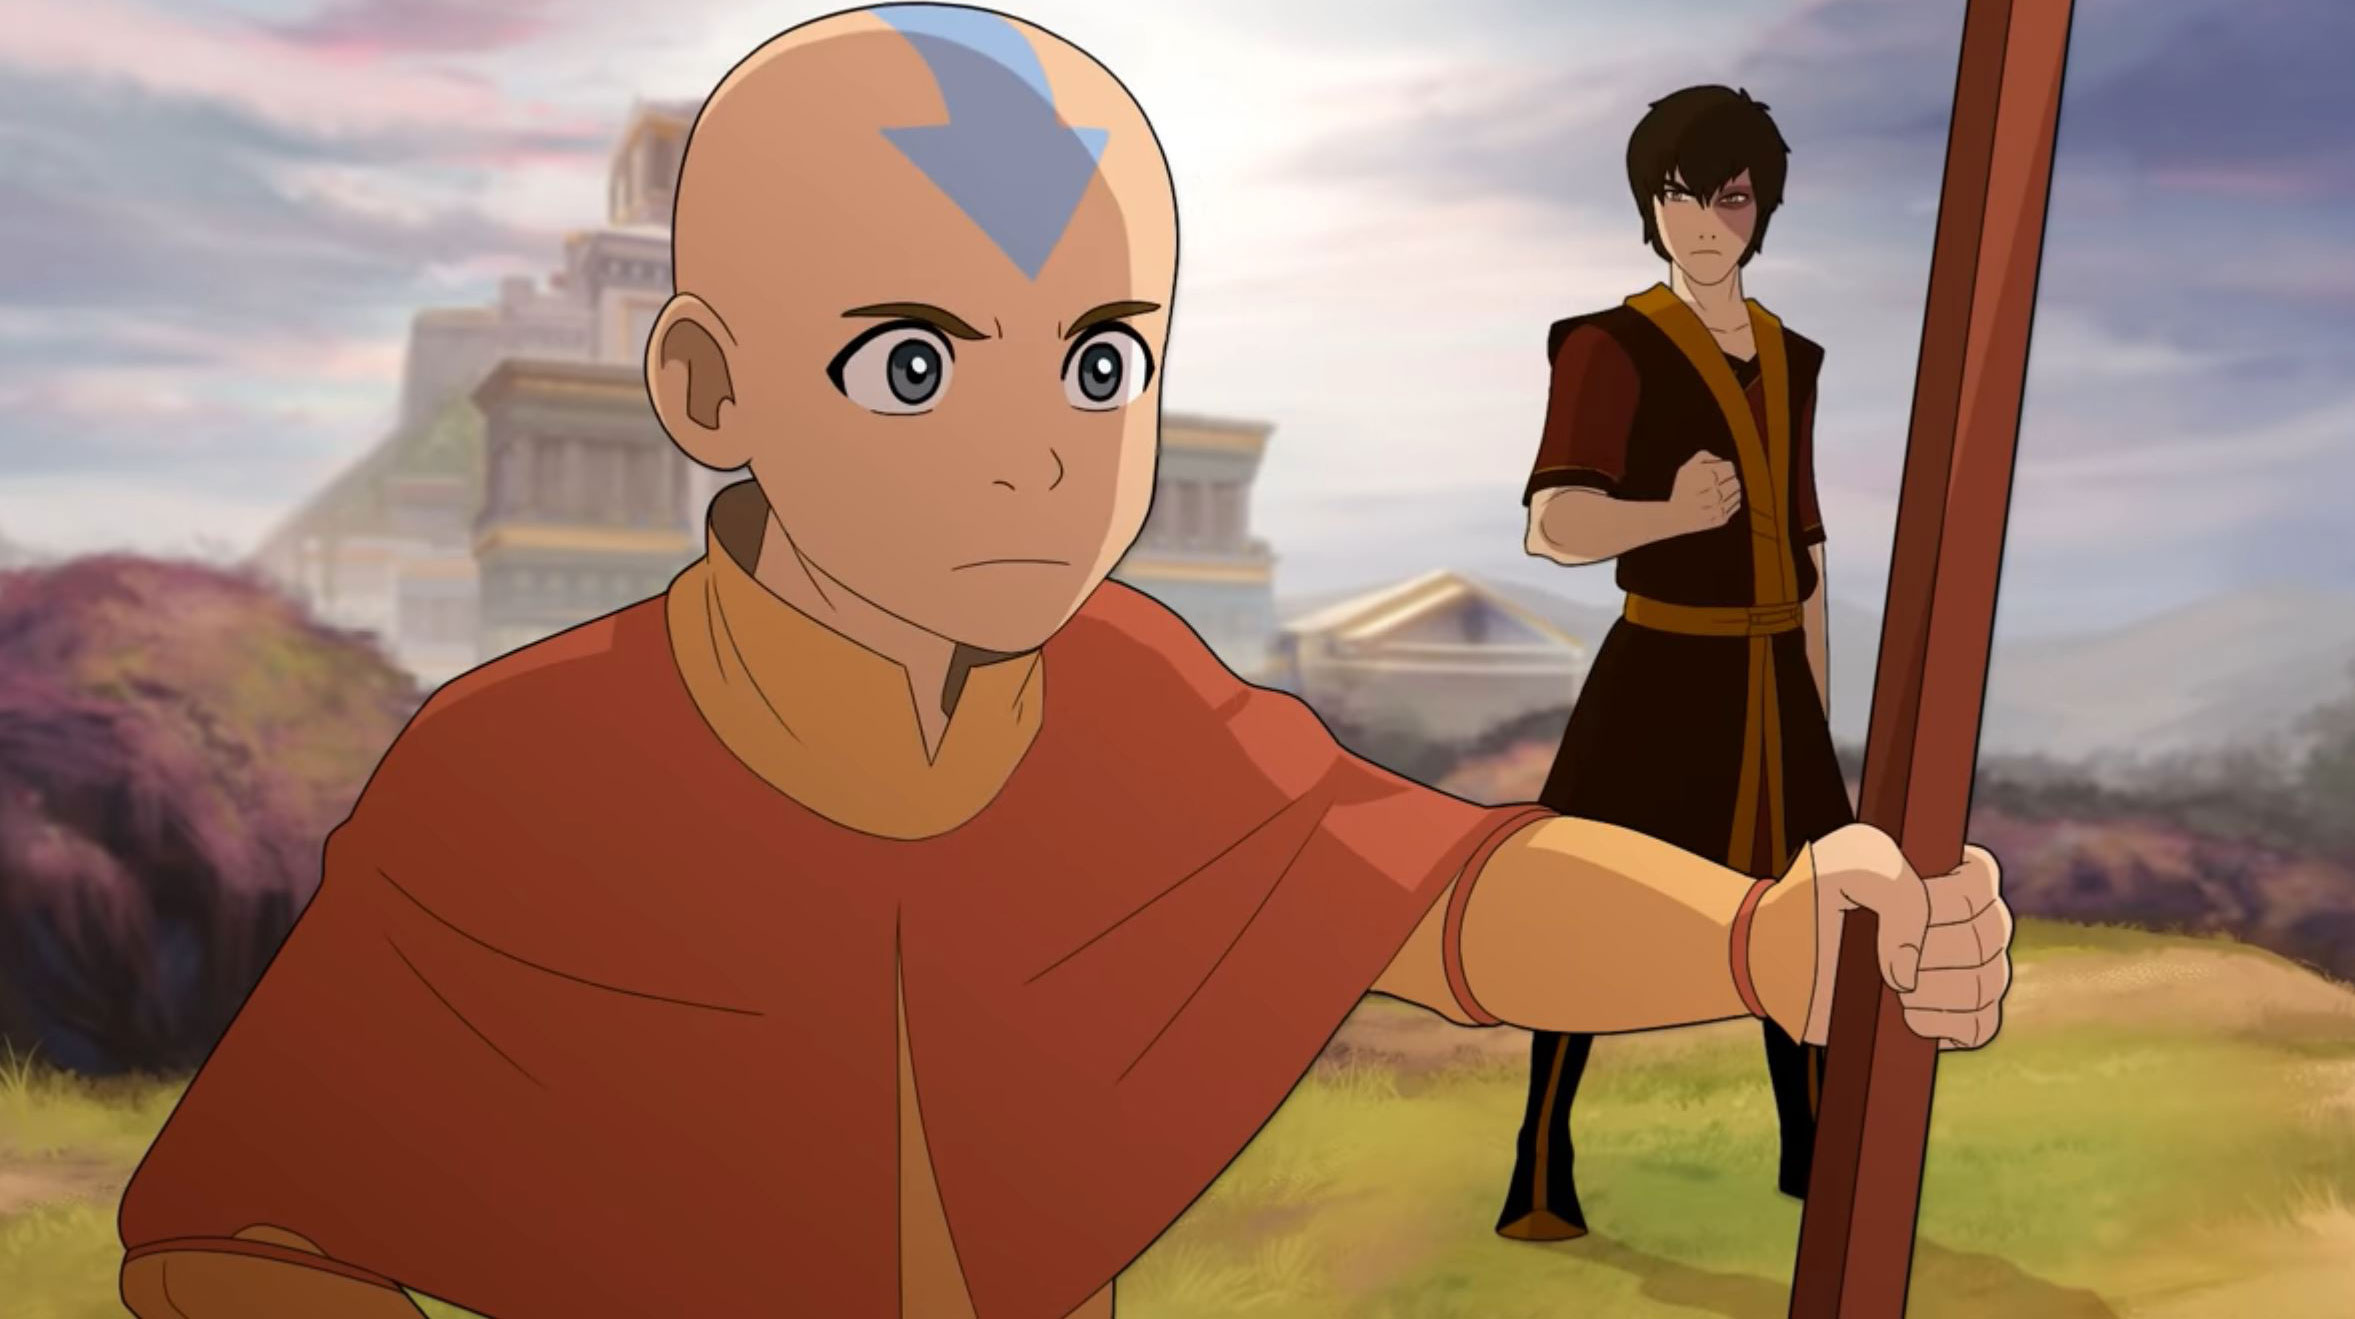 Avatar: The Last Airbender skins are coming to Smite